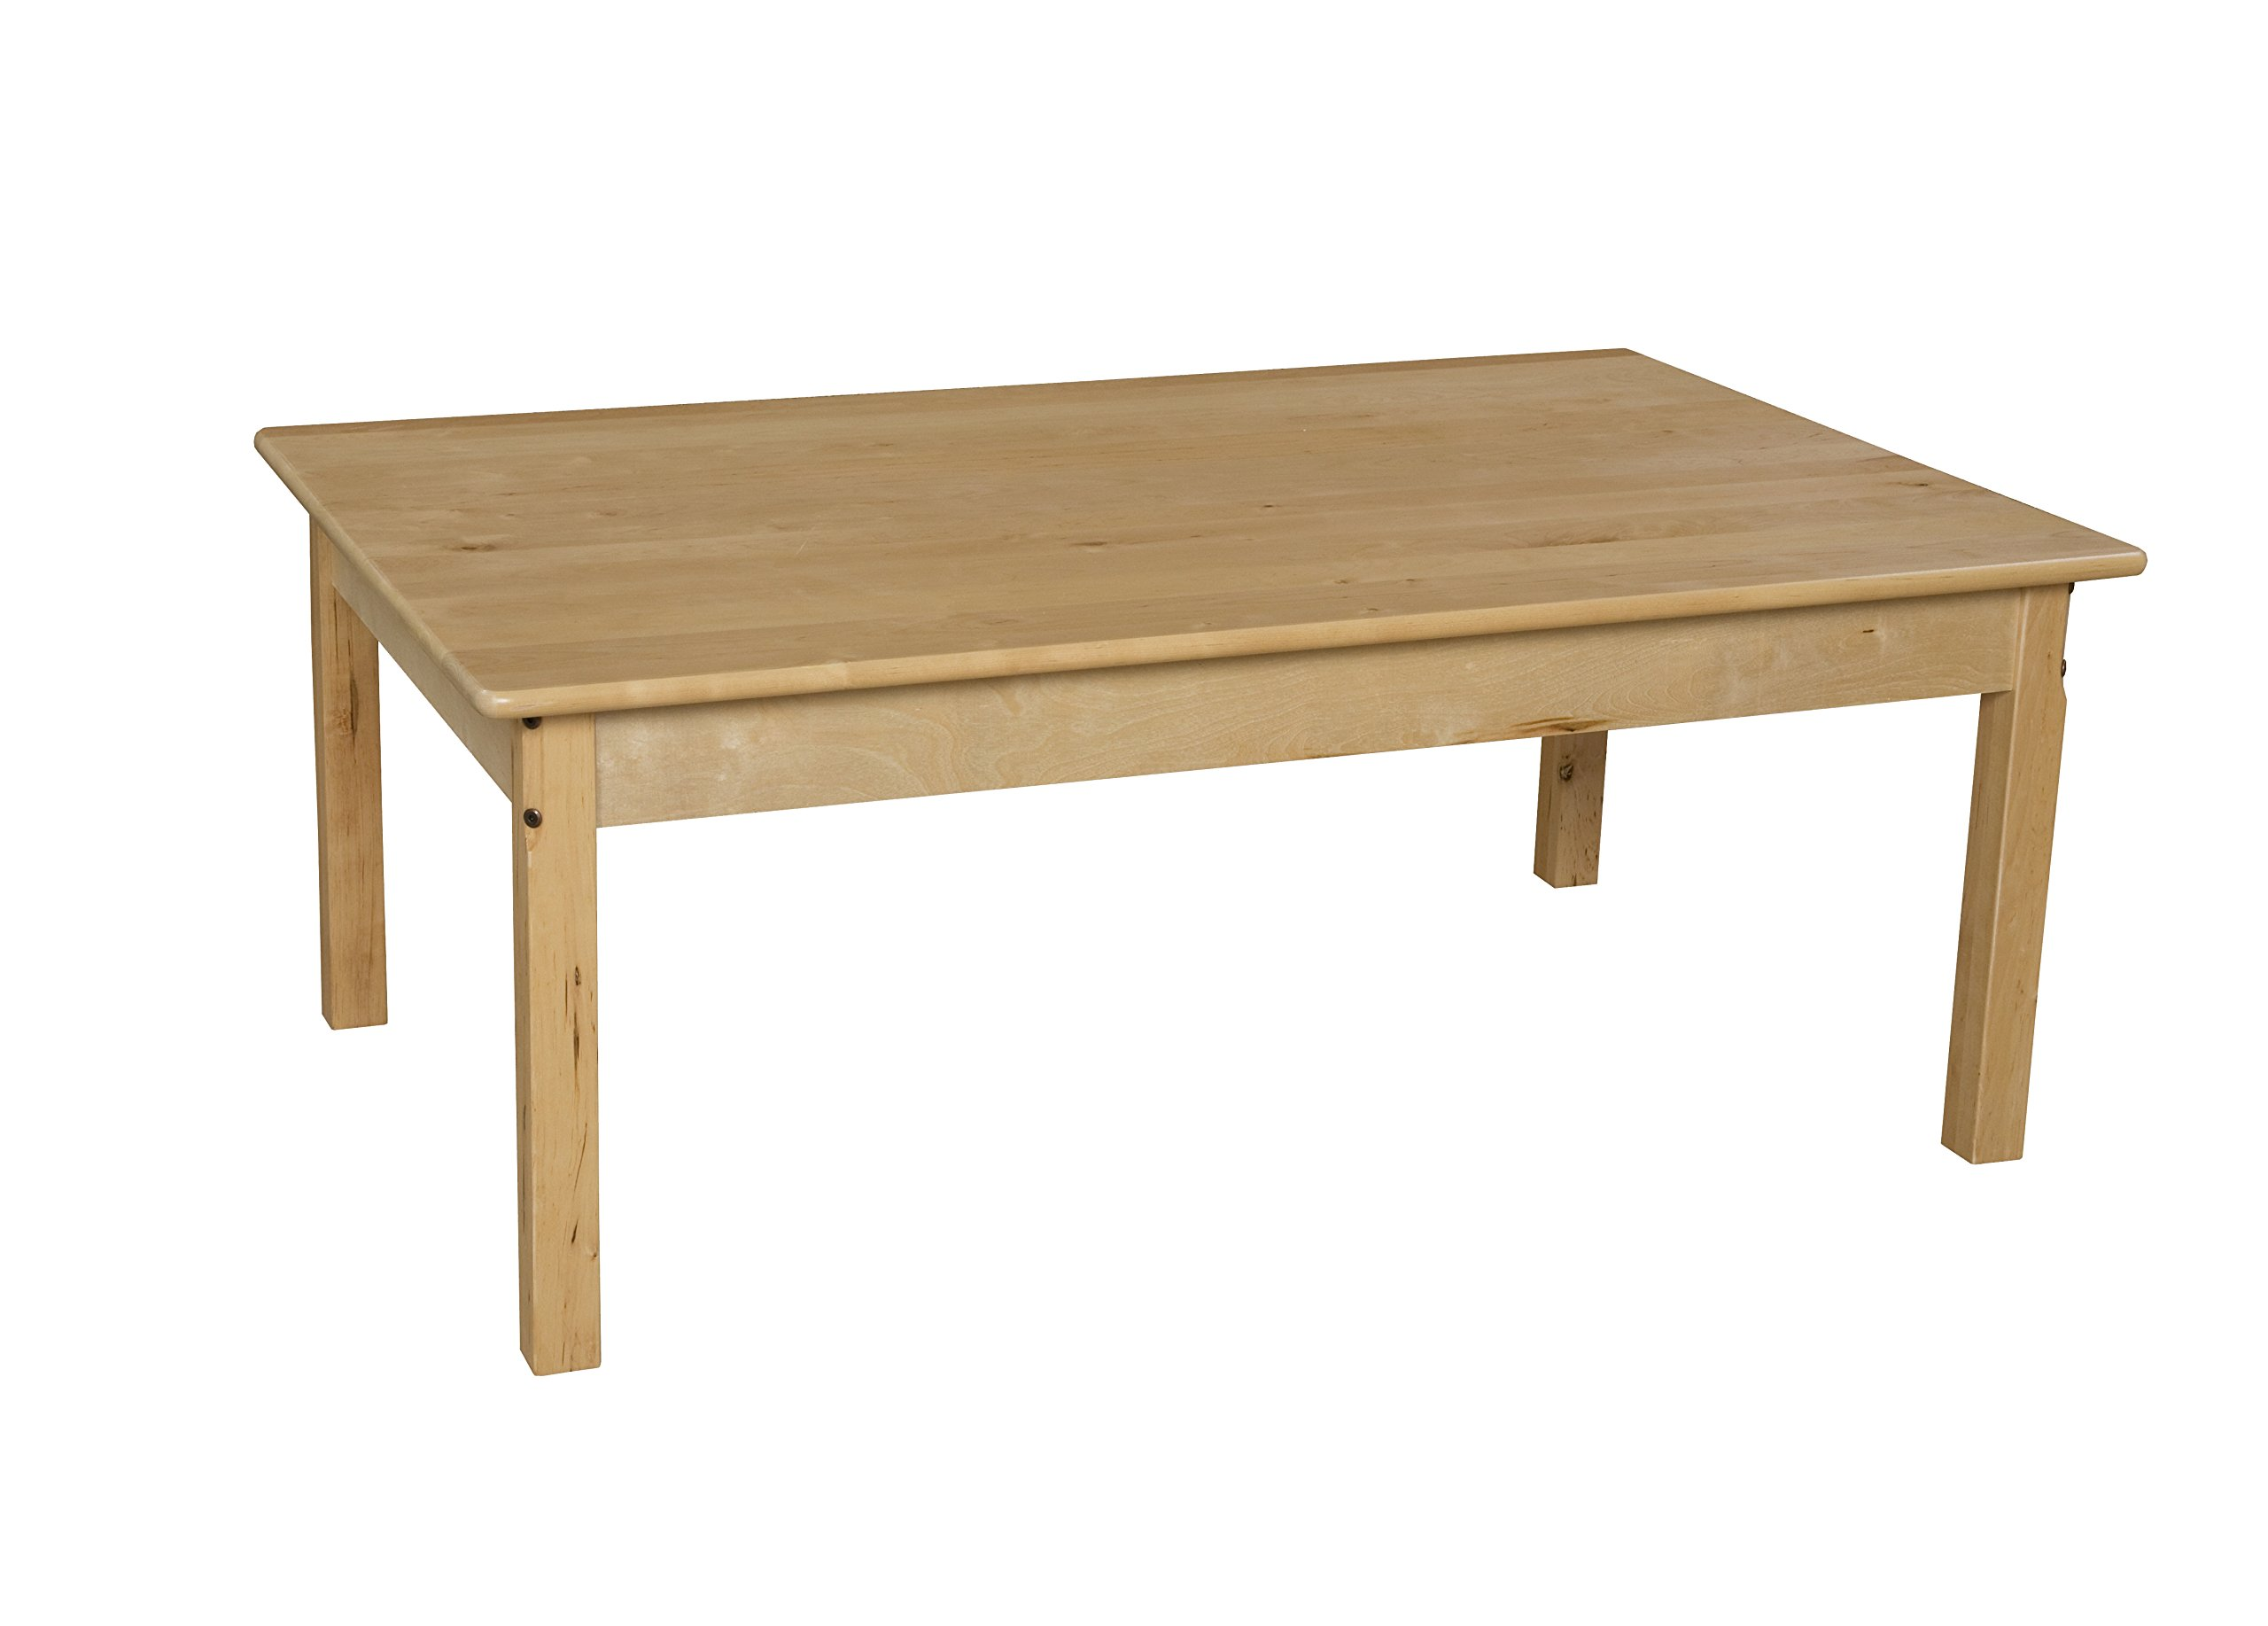 Wood Designs WD83422 Child's Table, 30'' x 48'' Rectangle with 22'' Legs